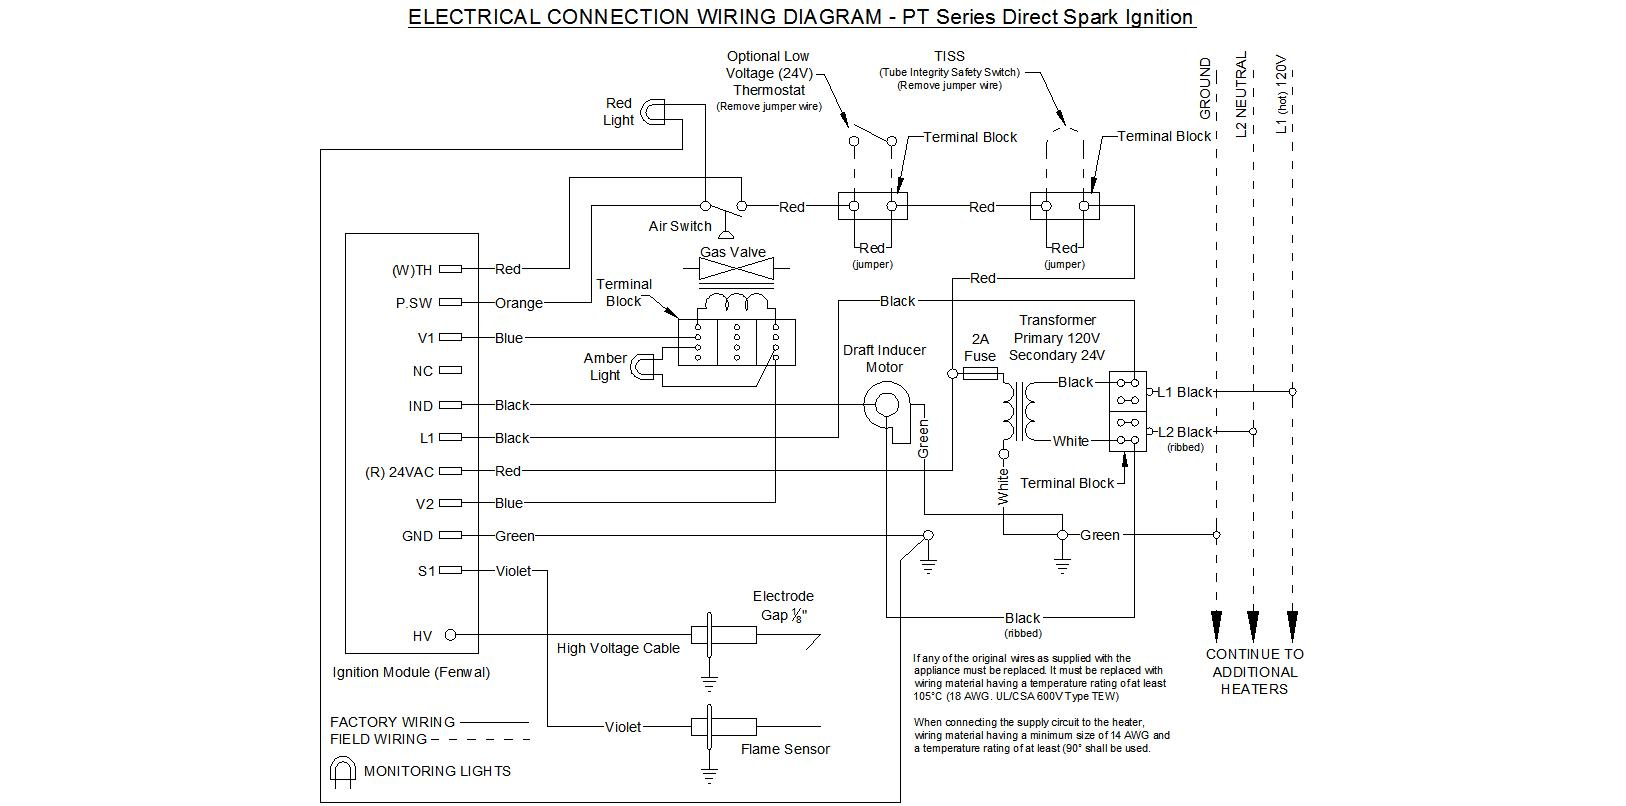 120 Volt Electrical Wiring Color Codes Diagrams 220 Diagram Power Cord A3729 Example U2022 To